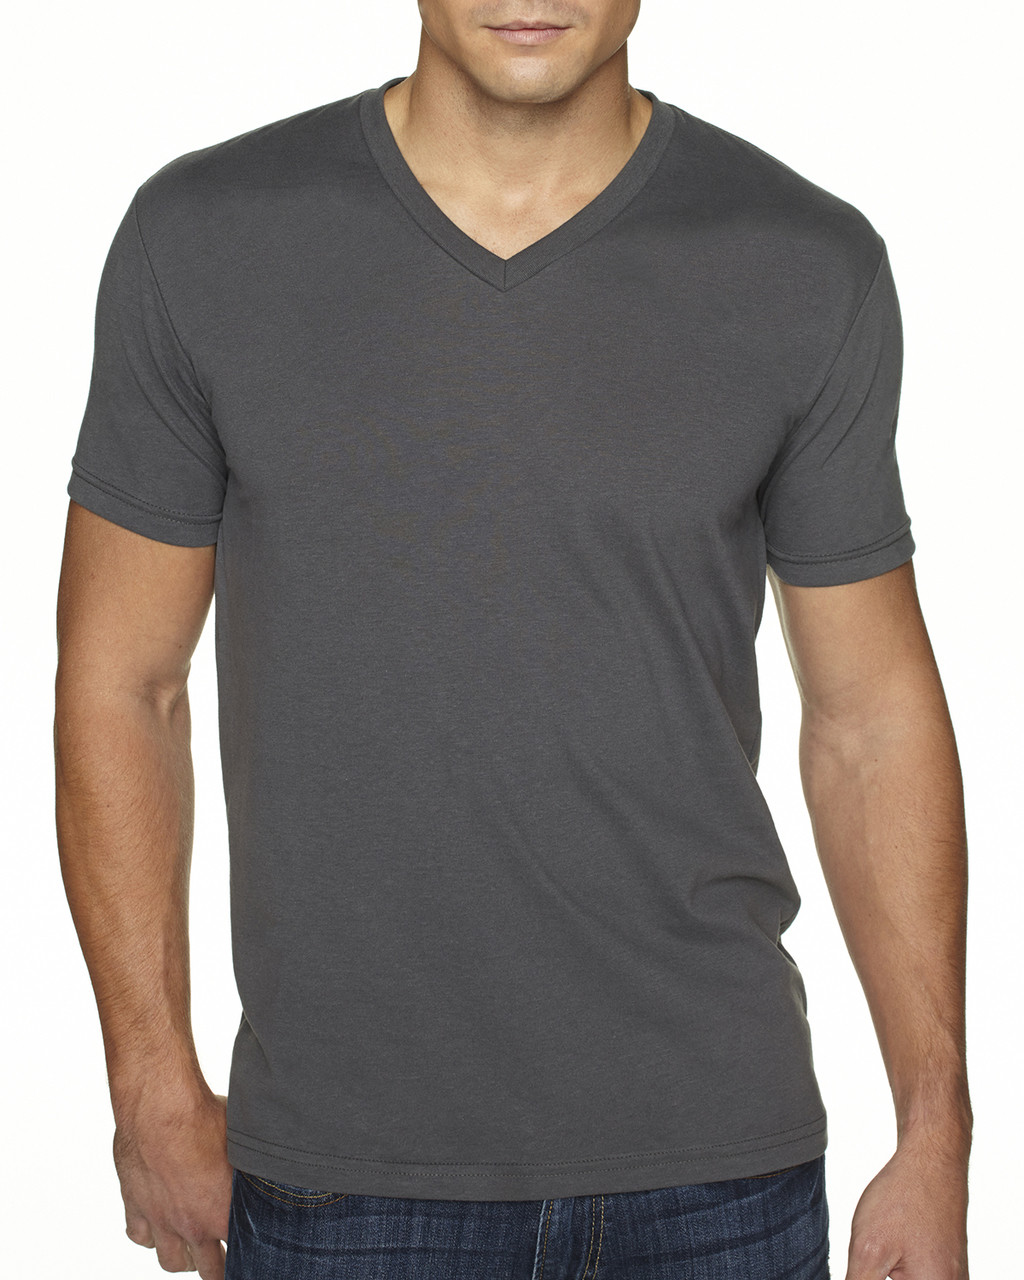 Heavy Metal - 6440 Next Level Men's Premium Fitted Sueded V-Neck Tee | Blankclothing.ca